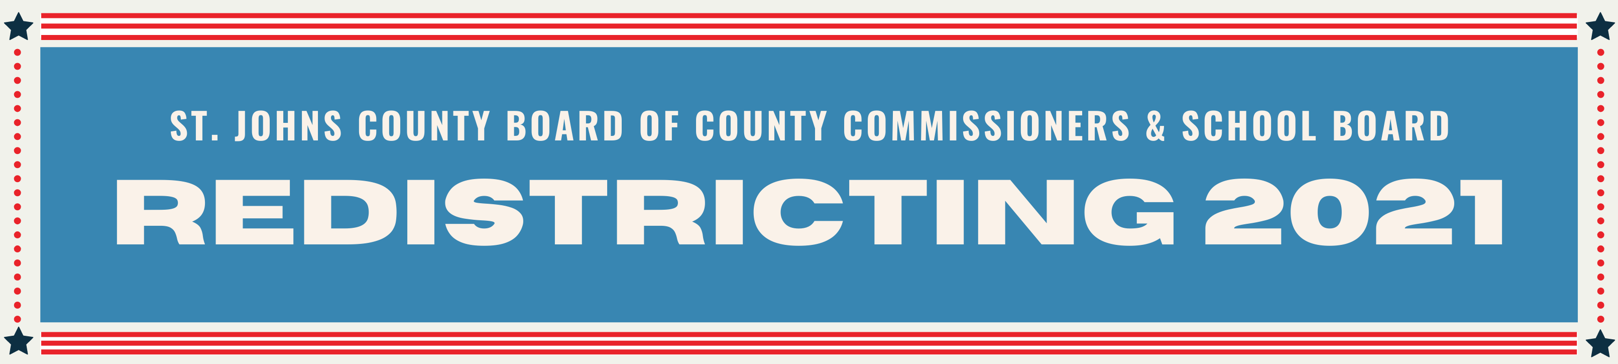 St. Johns County Board of County Commissioners & SChool Board - Redistricting 2021